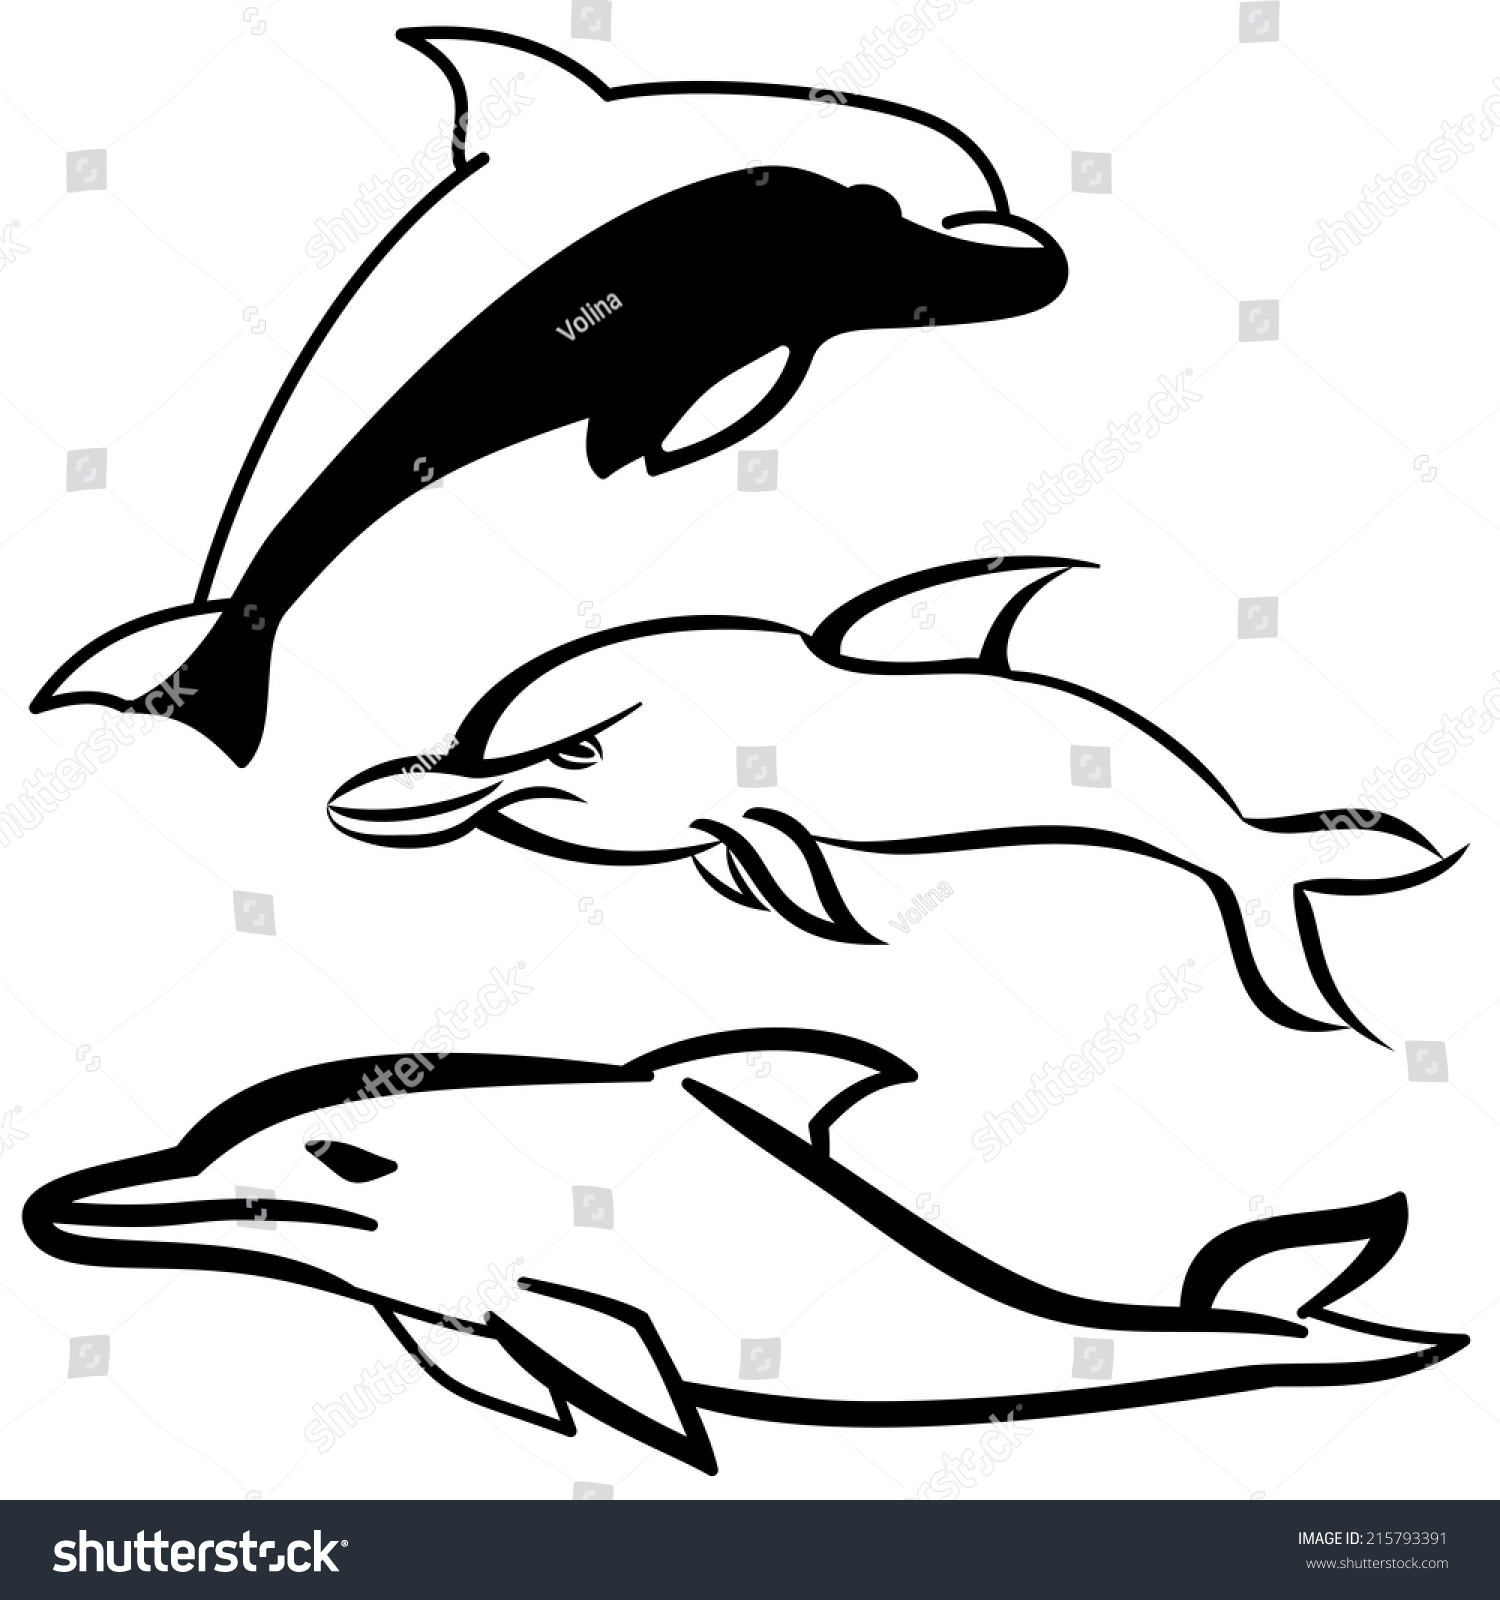 Uncategorized Simple Dolphin Drawing simple black white dolphin cartoon icon stock vector 215793391 and icon